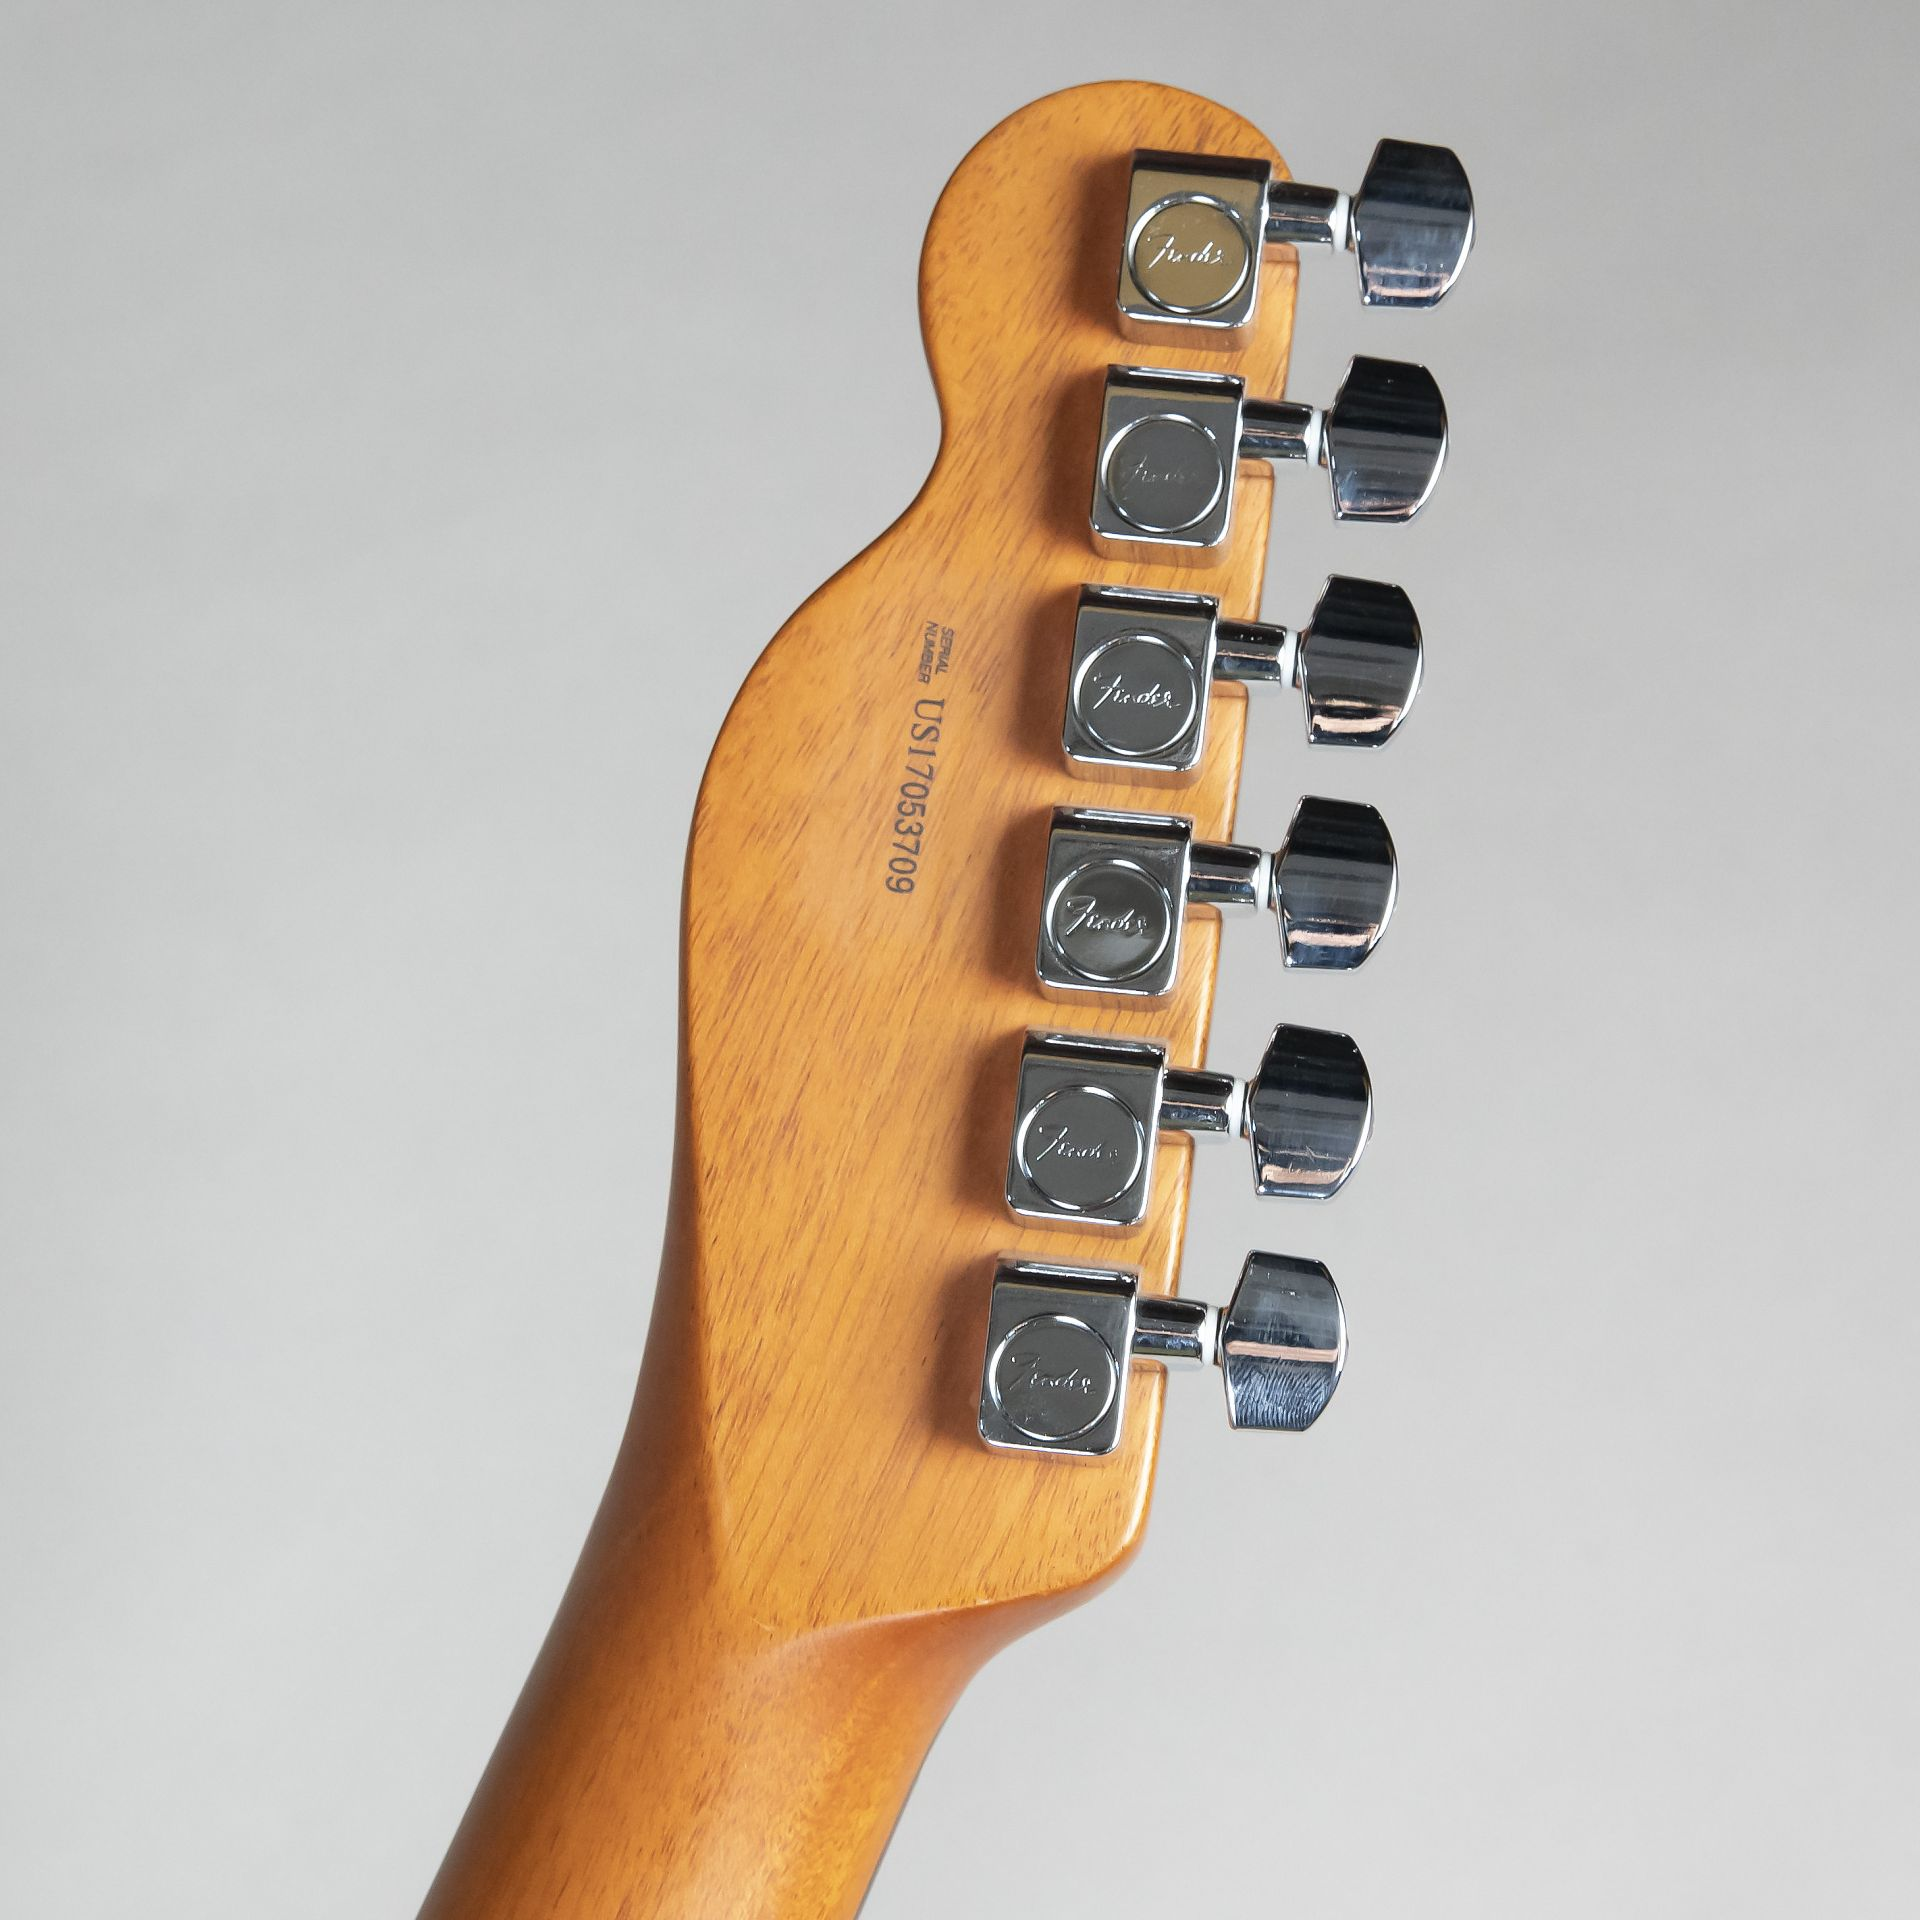 2017 LIMITED EDITION AMERICAN PROFESSIONAL MAHOGANY TELE DELUXEのヘッド裏-アップ画像